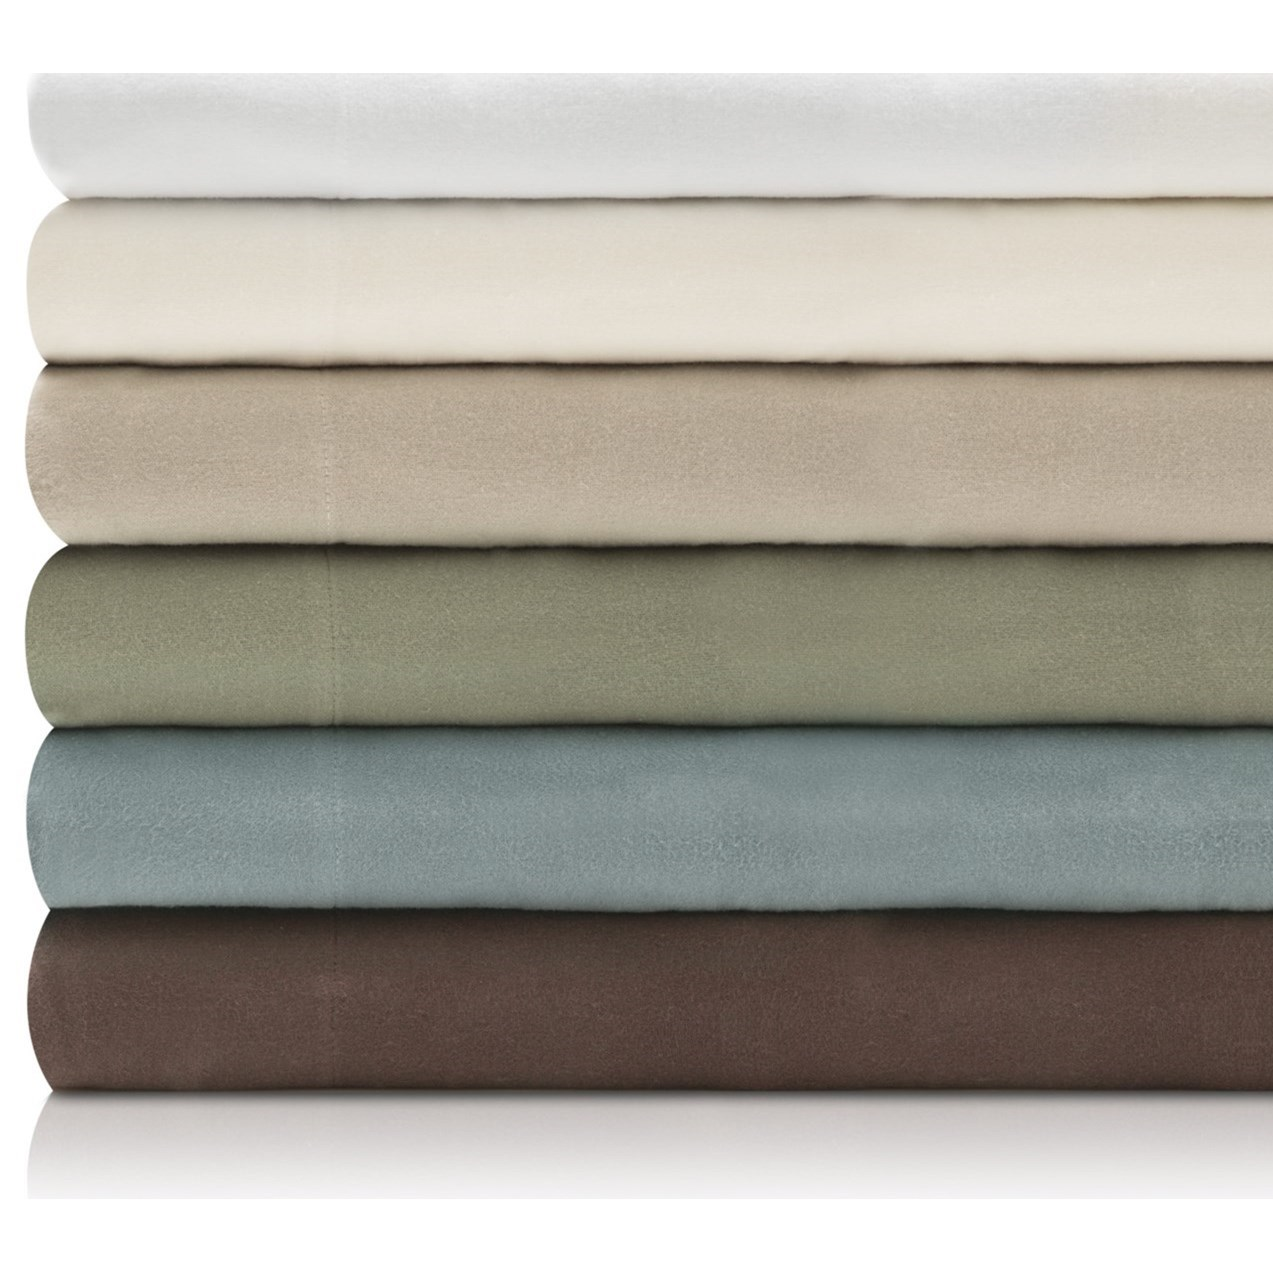 Malouf Portuguese Flannel Full Woven™ Portuguese Flannel Sheet Set - Item Number: WO19FFWHFS